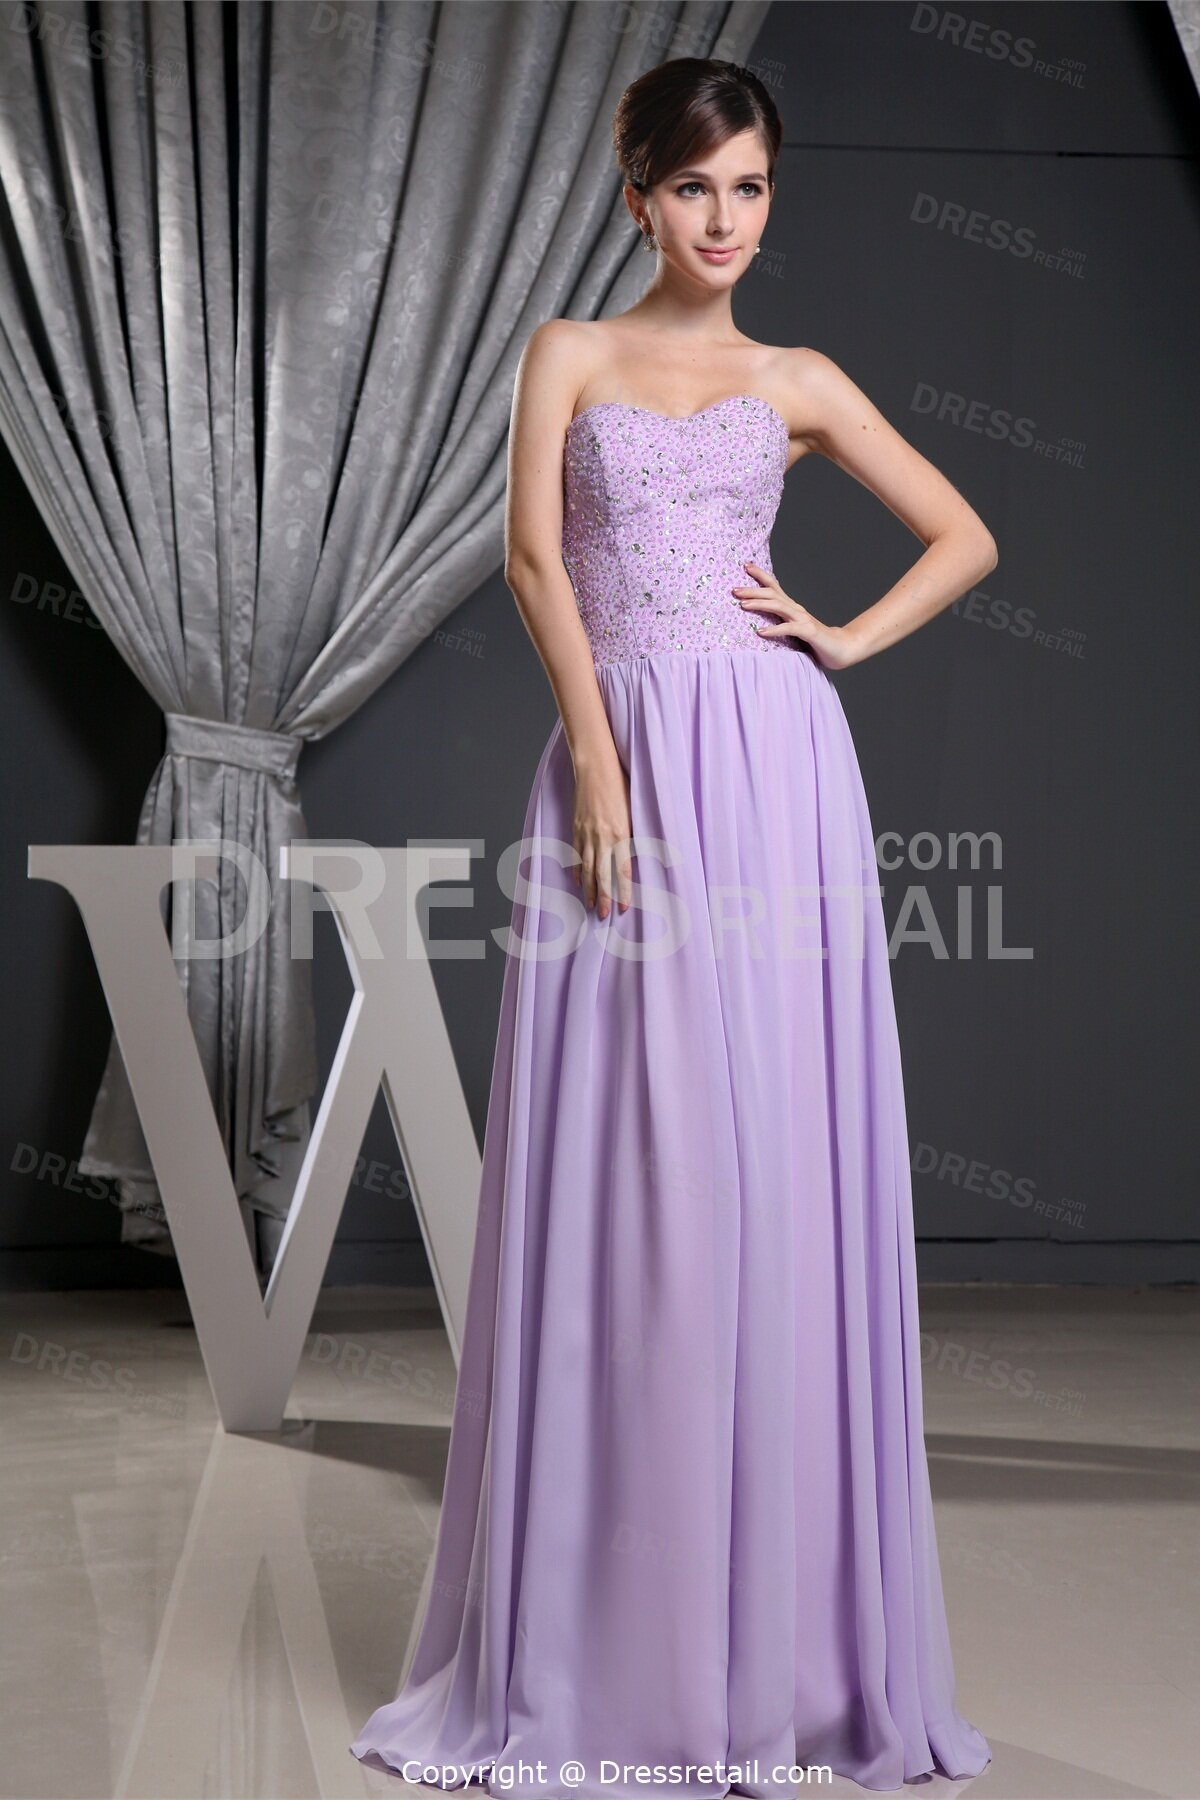 wedding dresses online shopping wedding dresses and wedding gowns